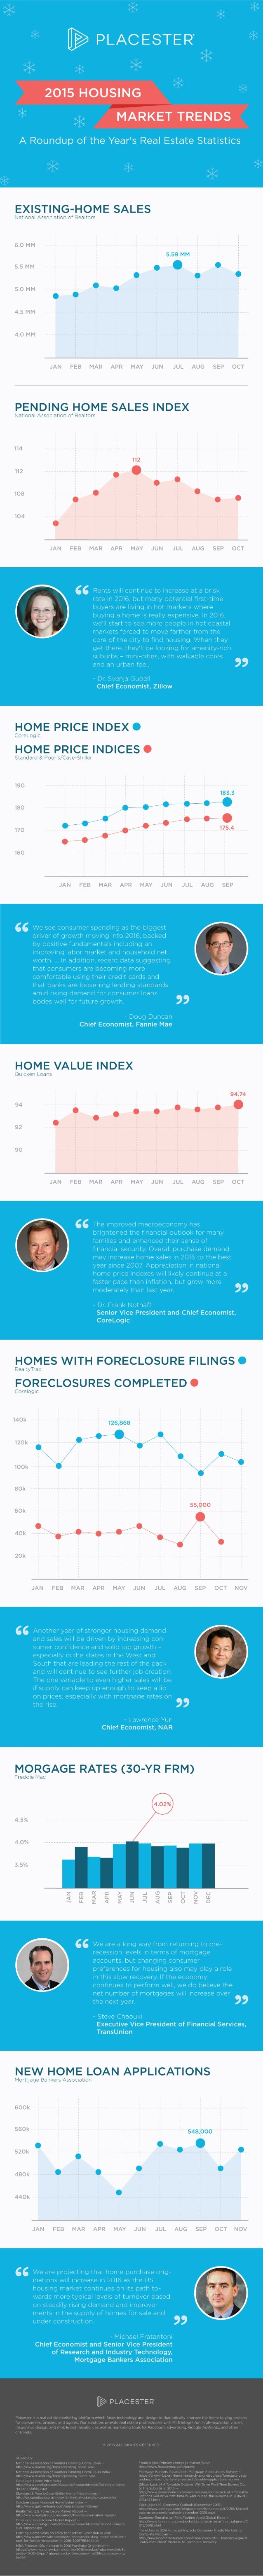 [Infographic] 2015 Housing Market Trends: A Roundup of the Year's Real Estate Statistics